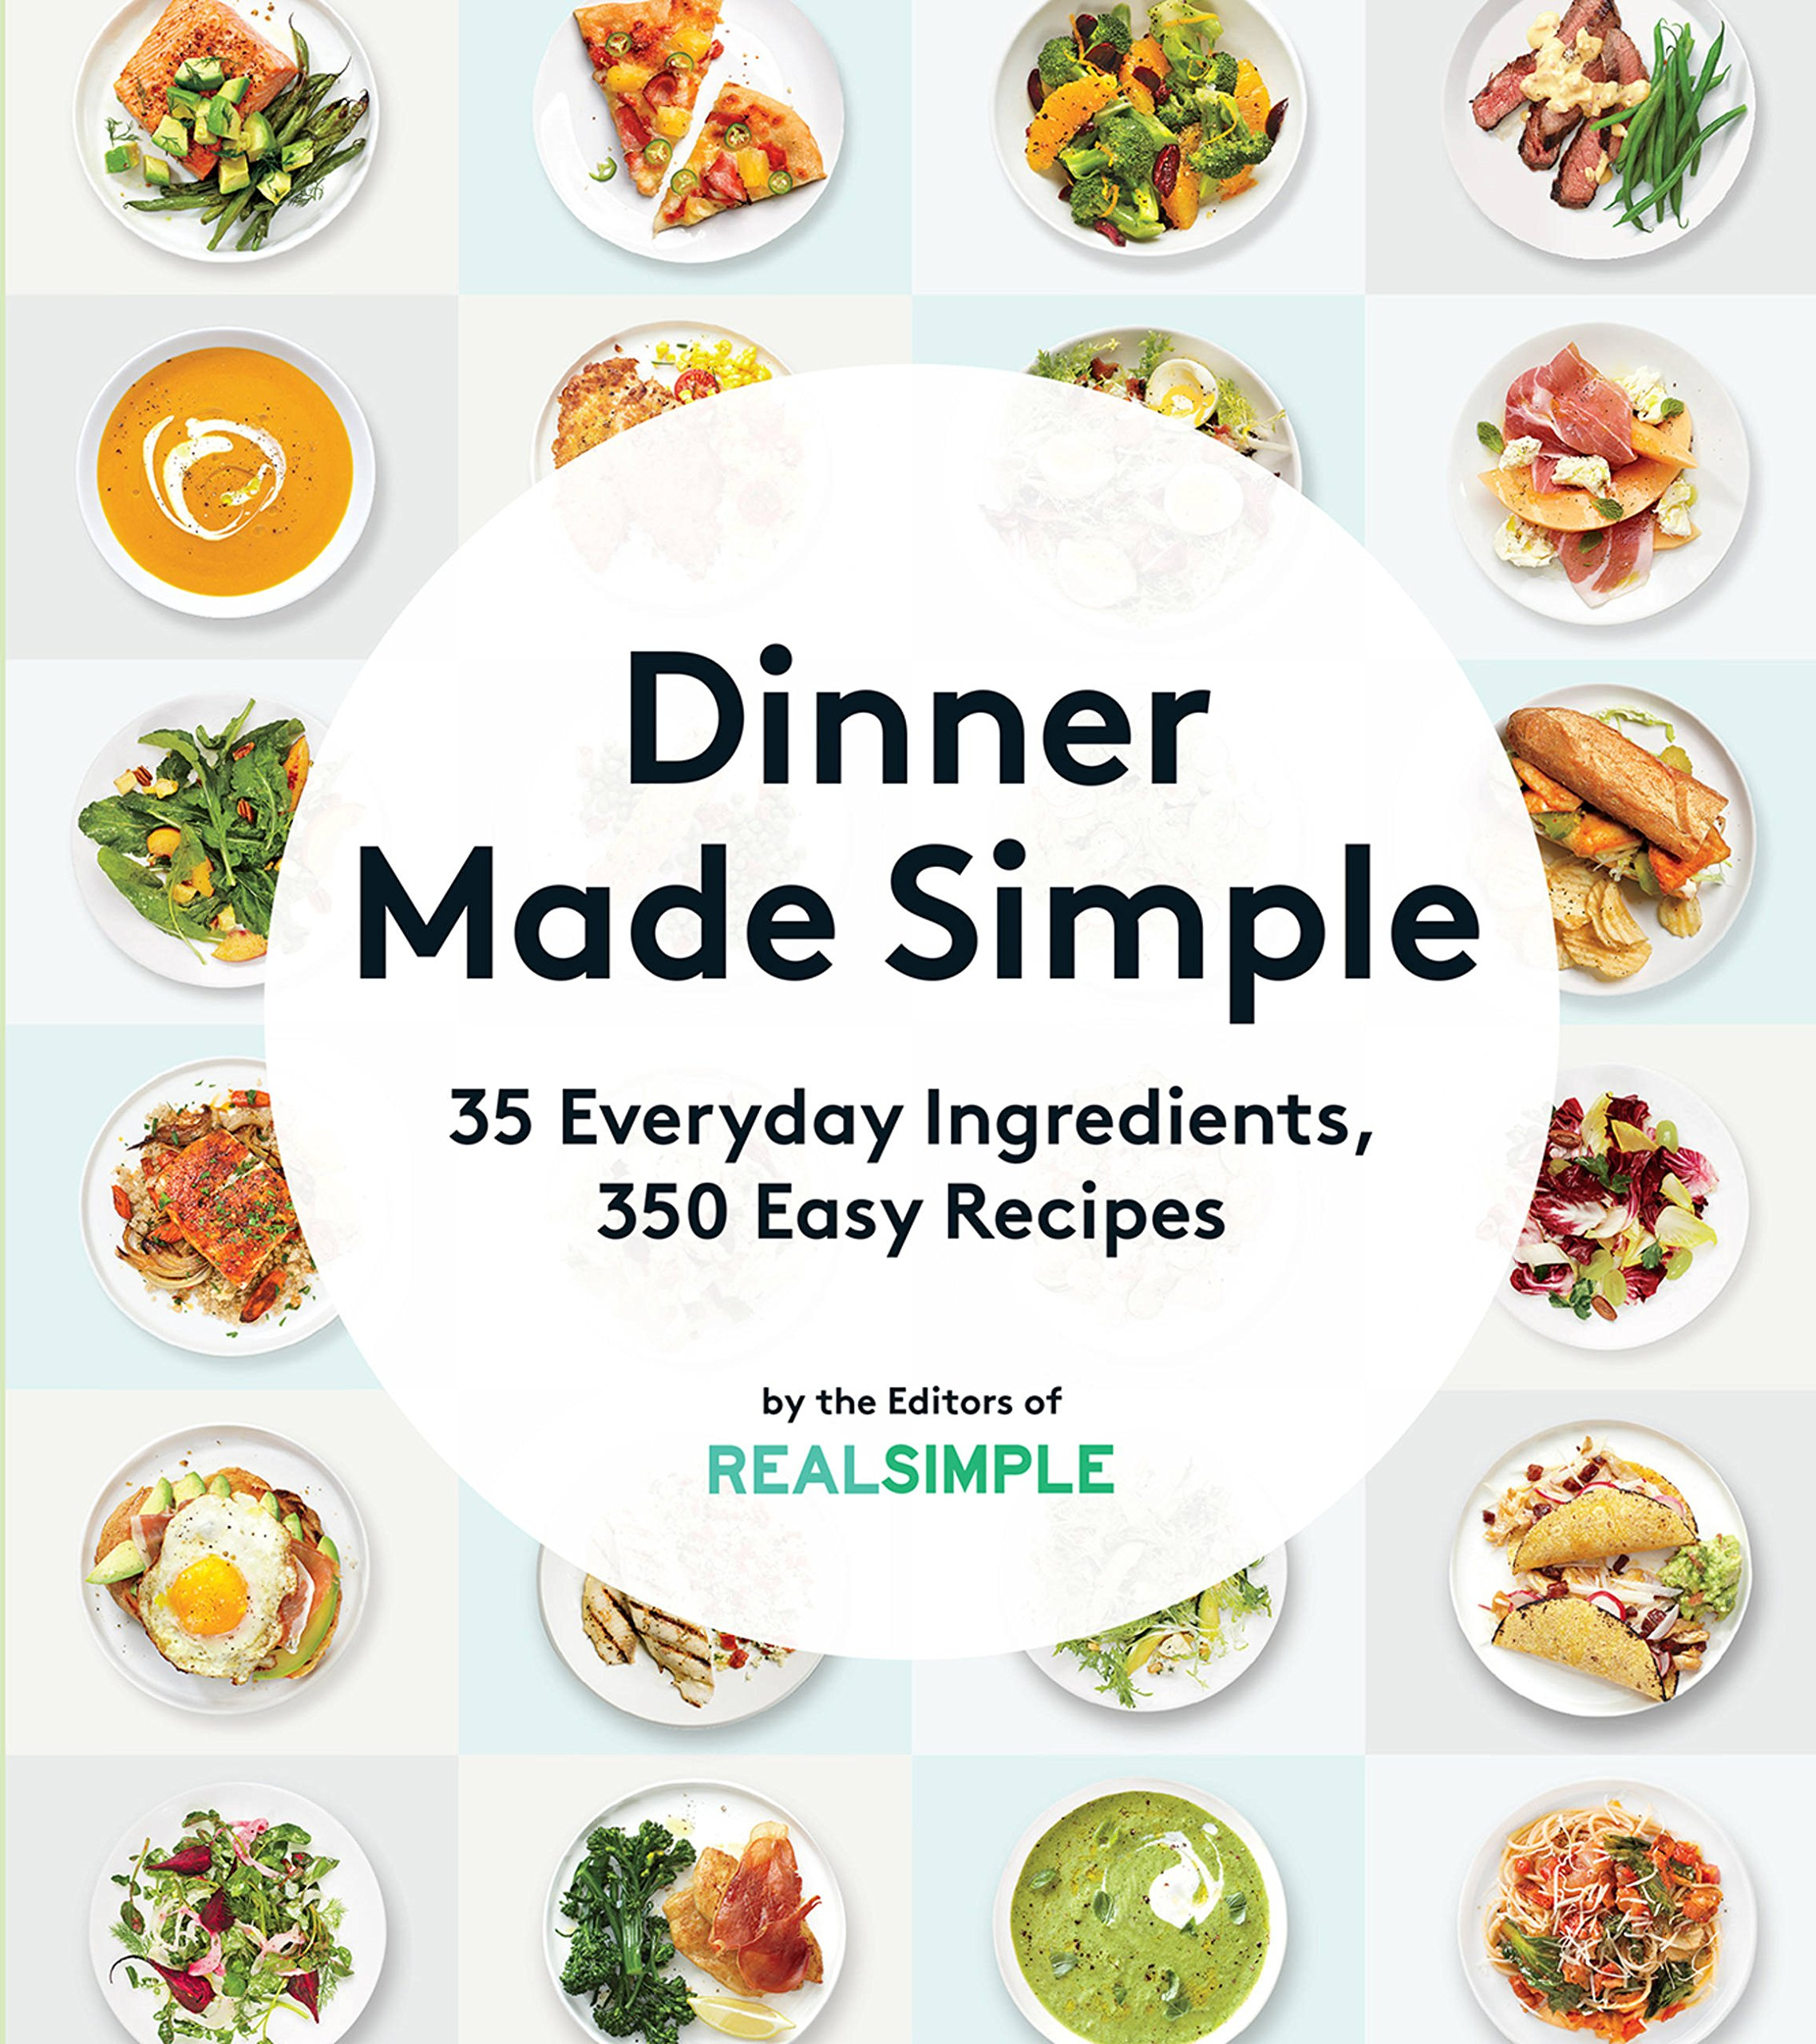 Dinner made simple 35 everyday ingredients 350 easy recipes the dinner made simple 35 everyday ingredients 350 easy recipes the editors of real simple 9780848746896 amazon books forumfinder Image collections